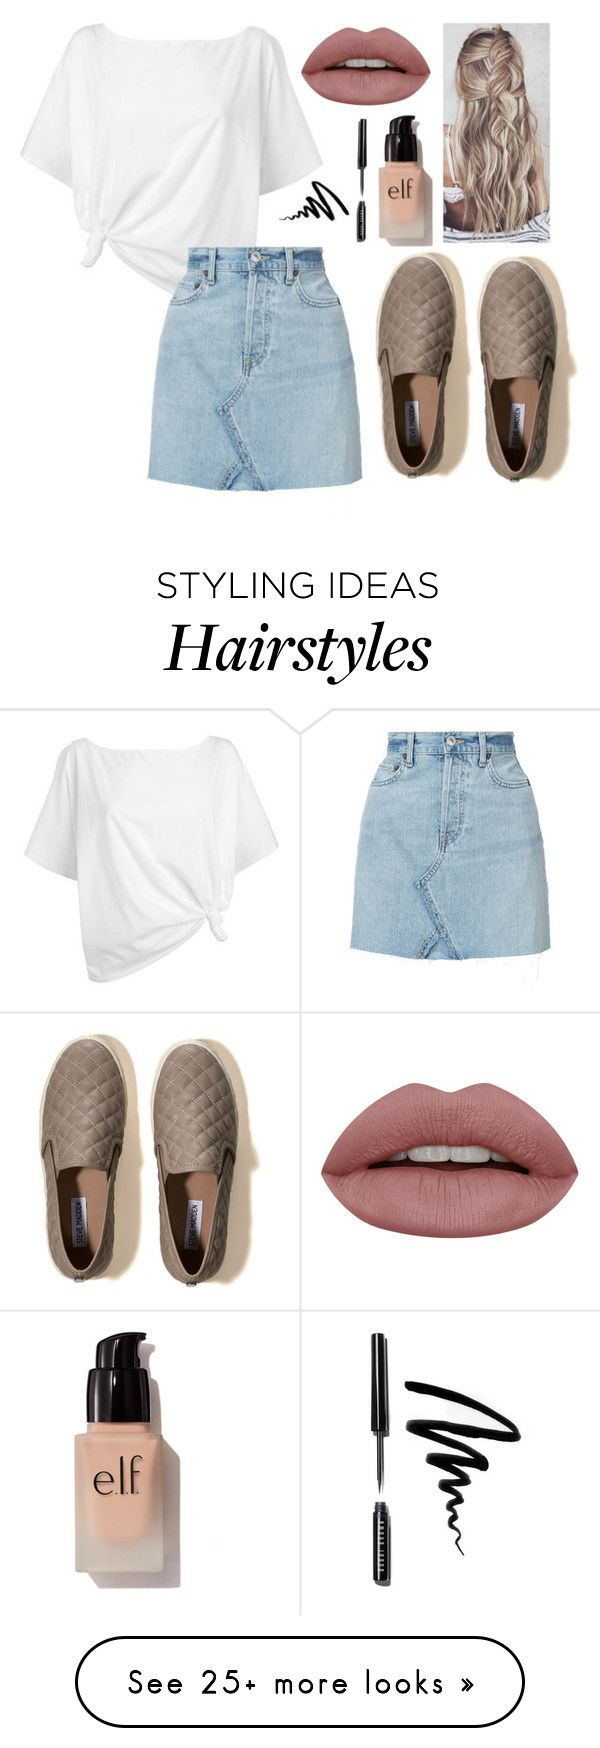 """quick set! RTD PLEASE!"" by alyssa-wilsonn on Polyvore featuring Red Herring, RE/DONE, Hollister Co., e.l.f. and Bobbi Brown Cosmetics"